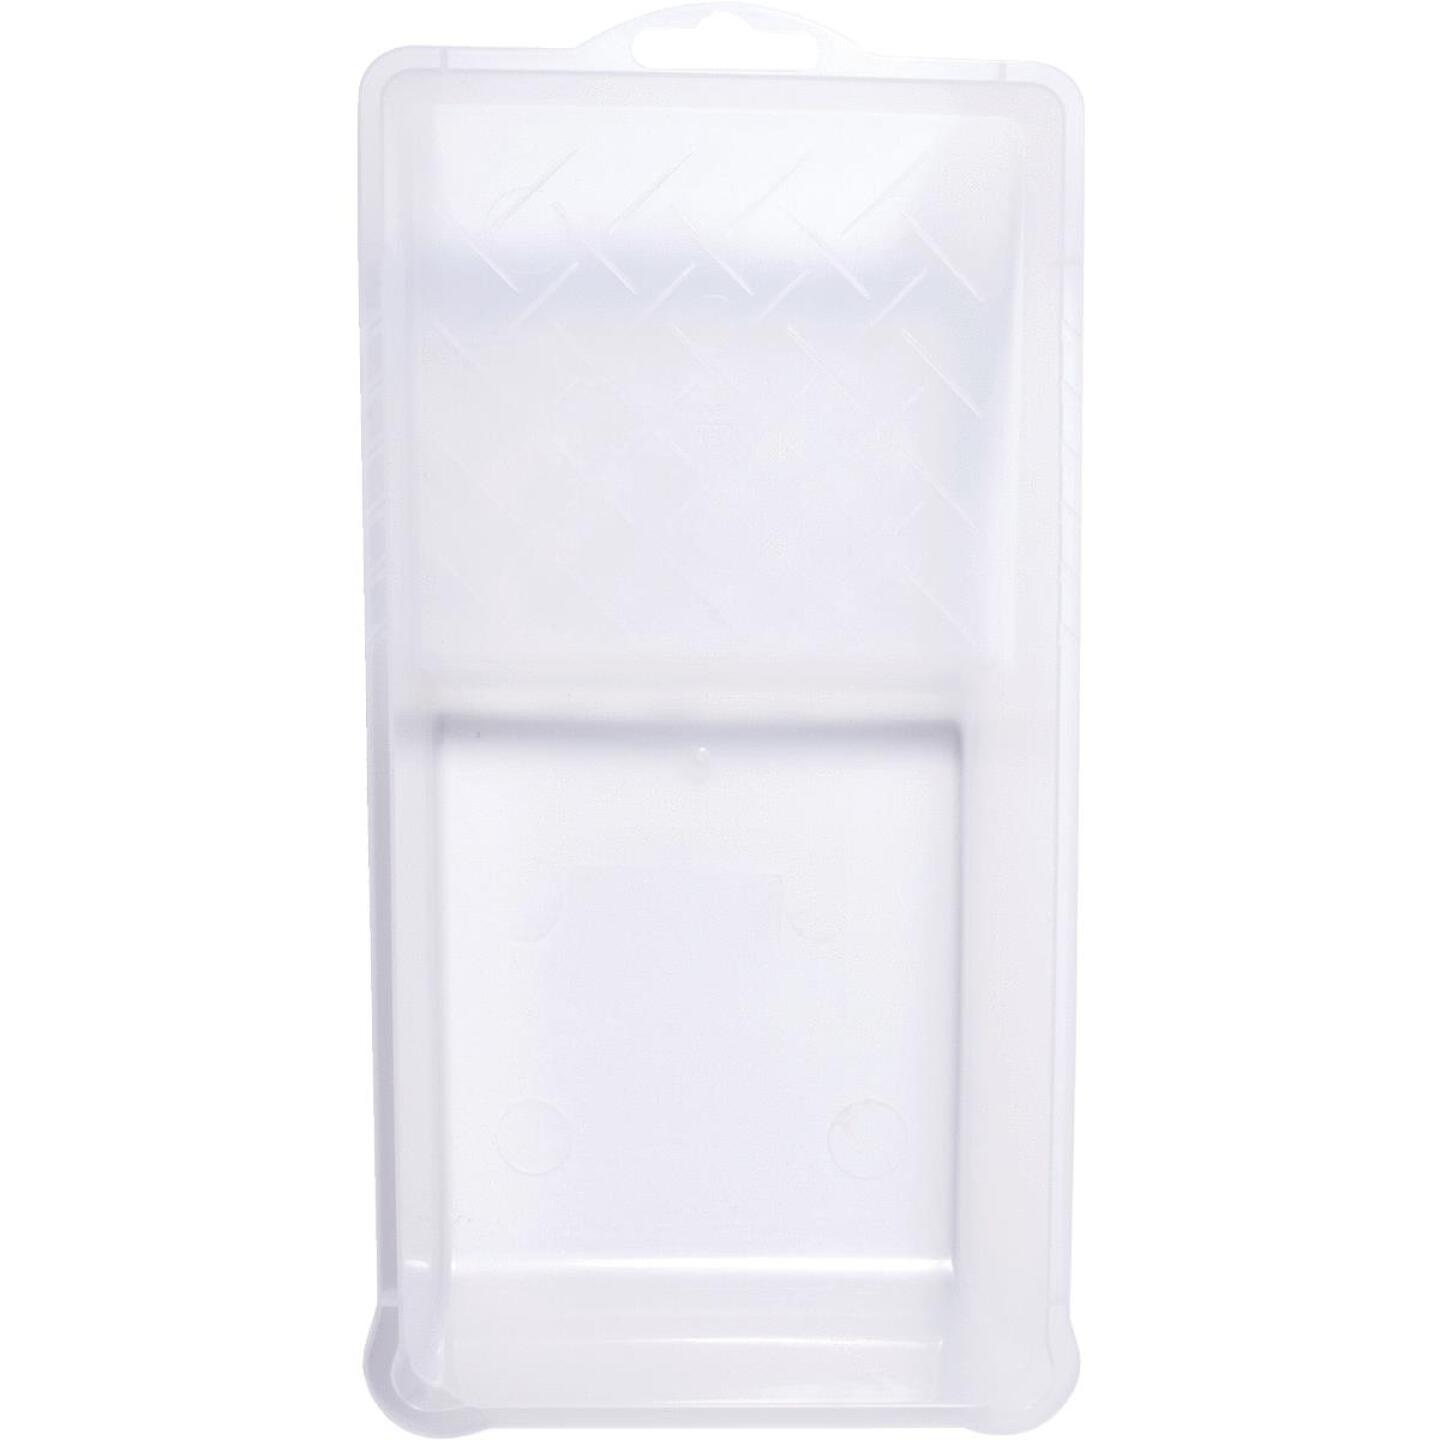 Whizz 6 In. x 11 In. Clear Solvent-Resistant Paint Tray Image 1